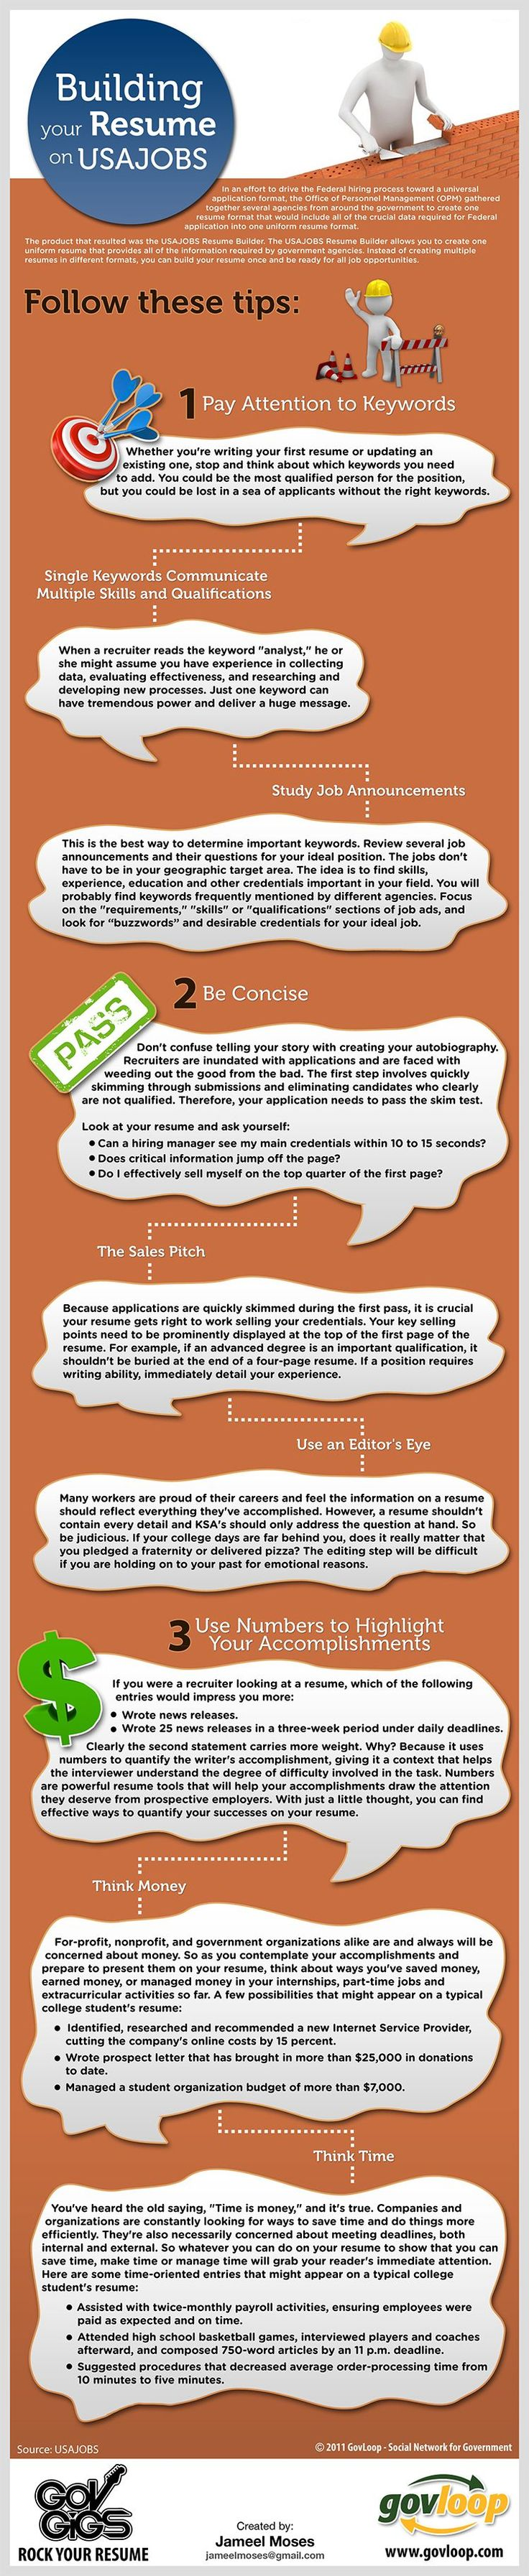 rock your resume usajobs style infograph to help job seekers build their